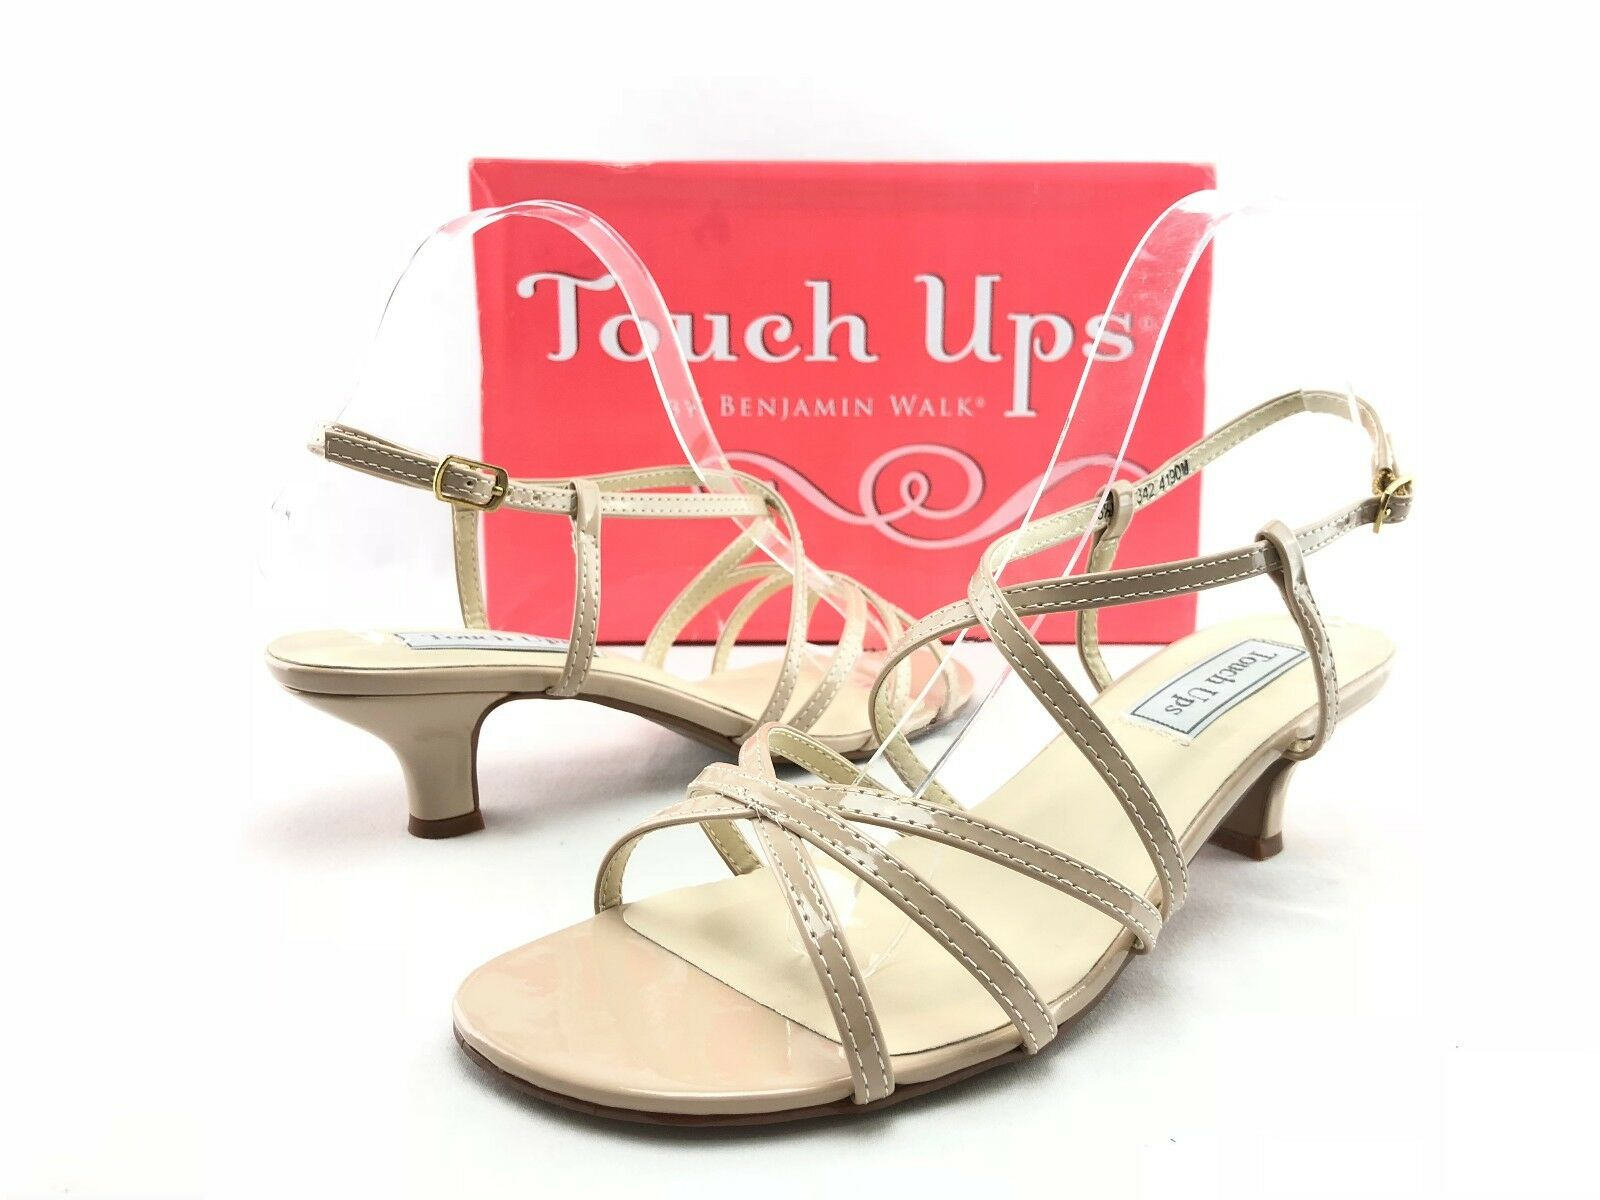 NEW Touch Touch Touch Ups Eileen Women's Nude Strappy Sandals Heels shoes US 8.5 M C115 862d7c